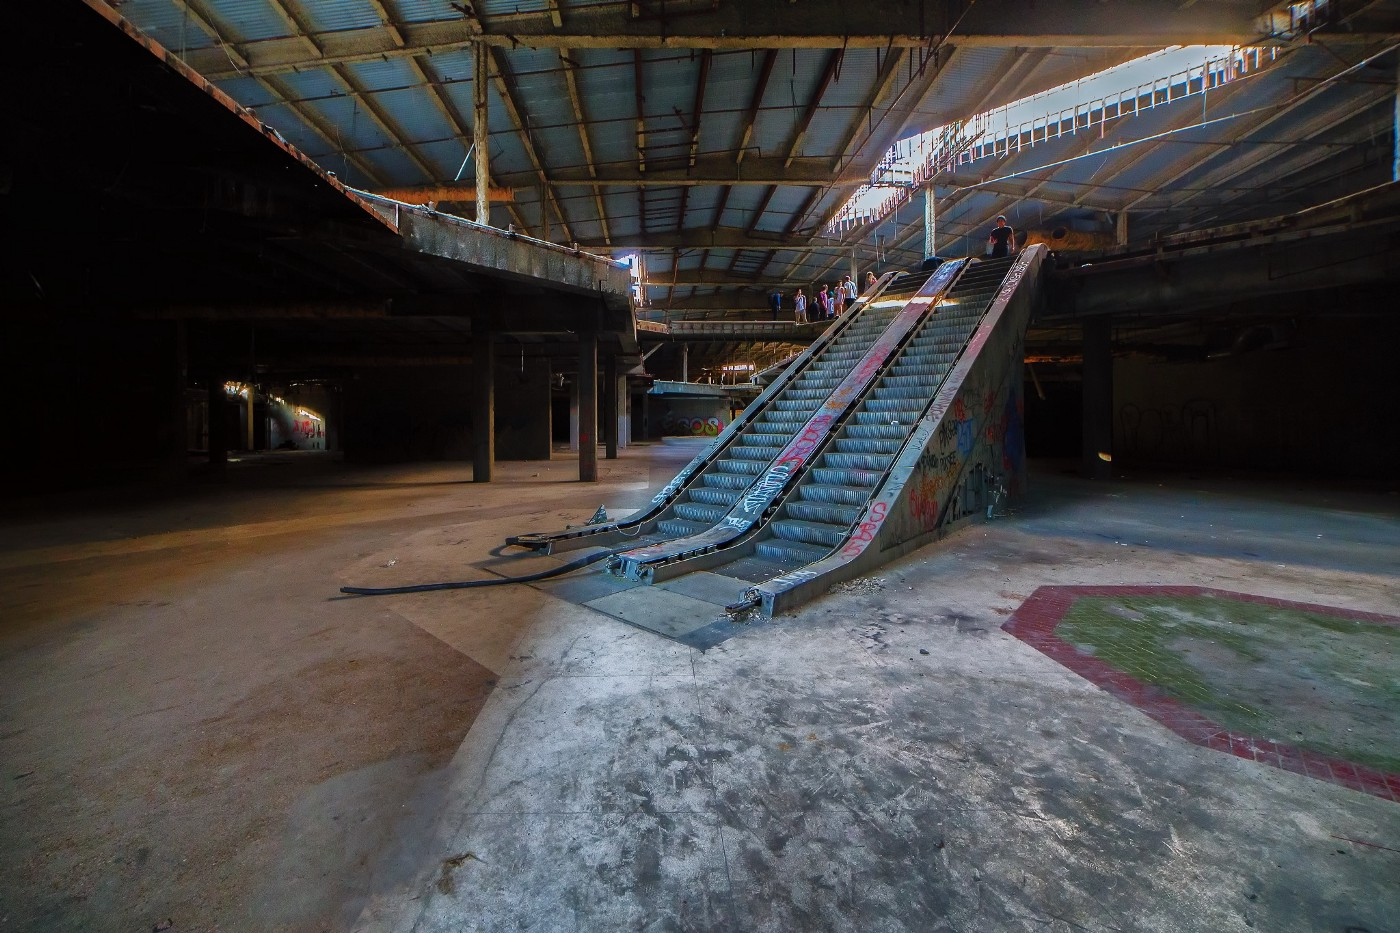 Interior of a dilapidated abandoned mall with escalator and floor tiles prominently featured